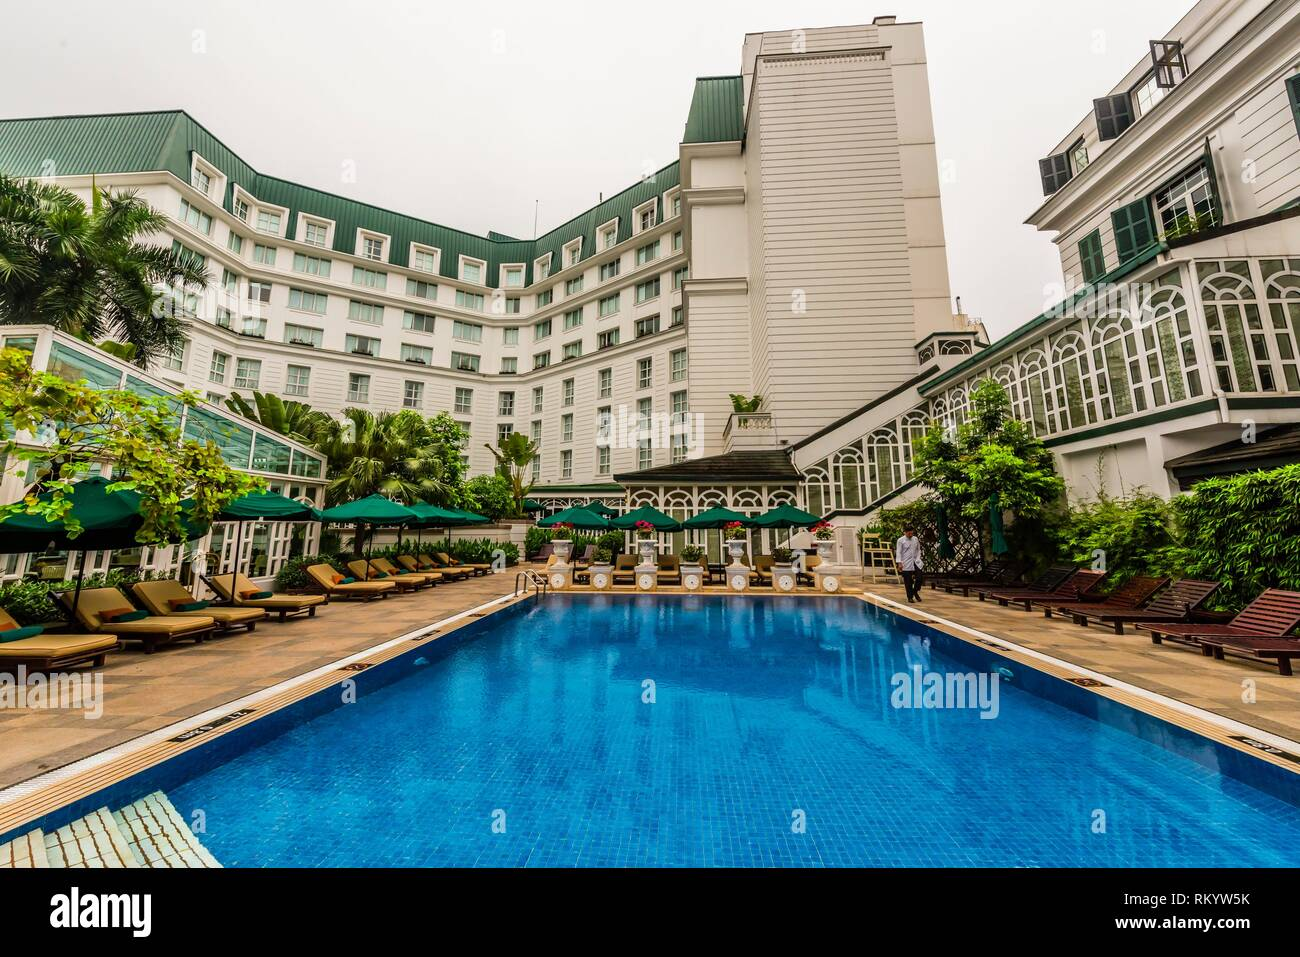 Swimming pool, Sofitel Legend Metropole Hanoi is a 5 star historic luxury hotel opened in 1901 in the French colonial style. Hanoi, northern Vietnam. - Stock Image